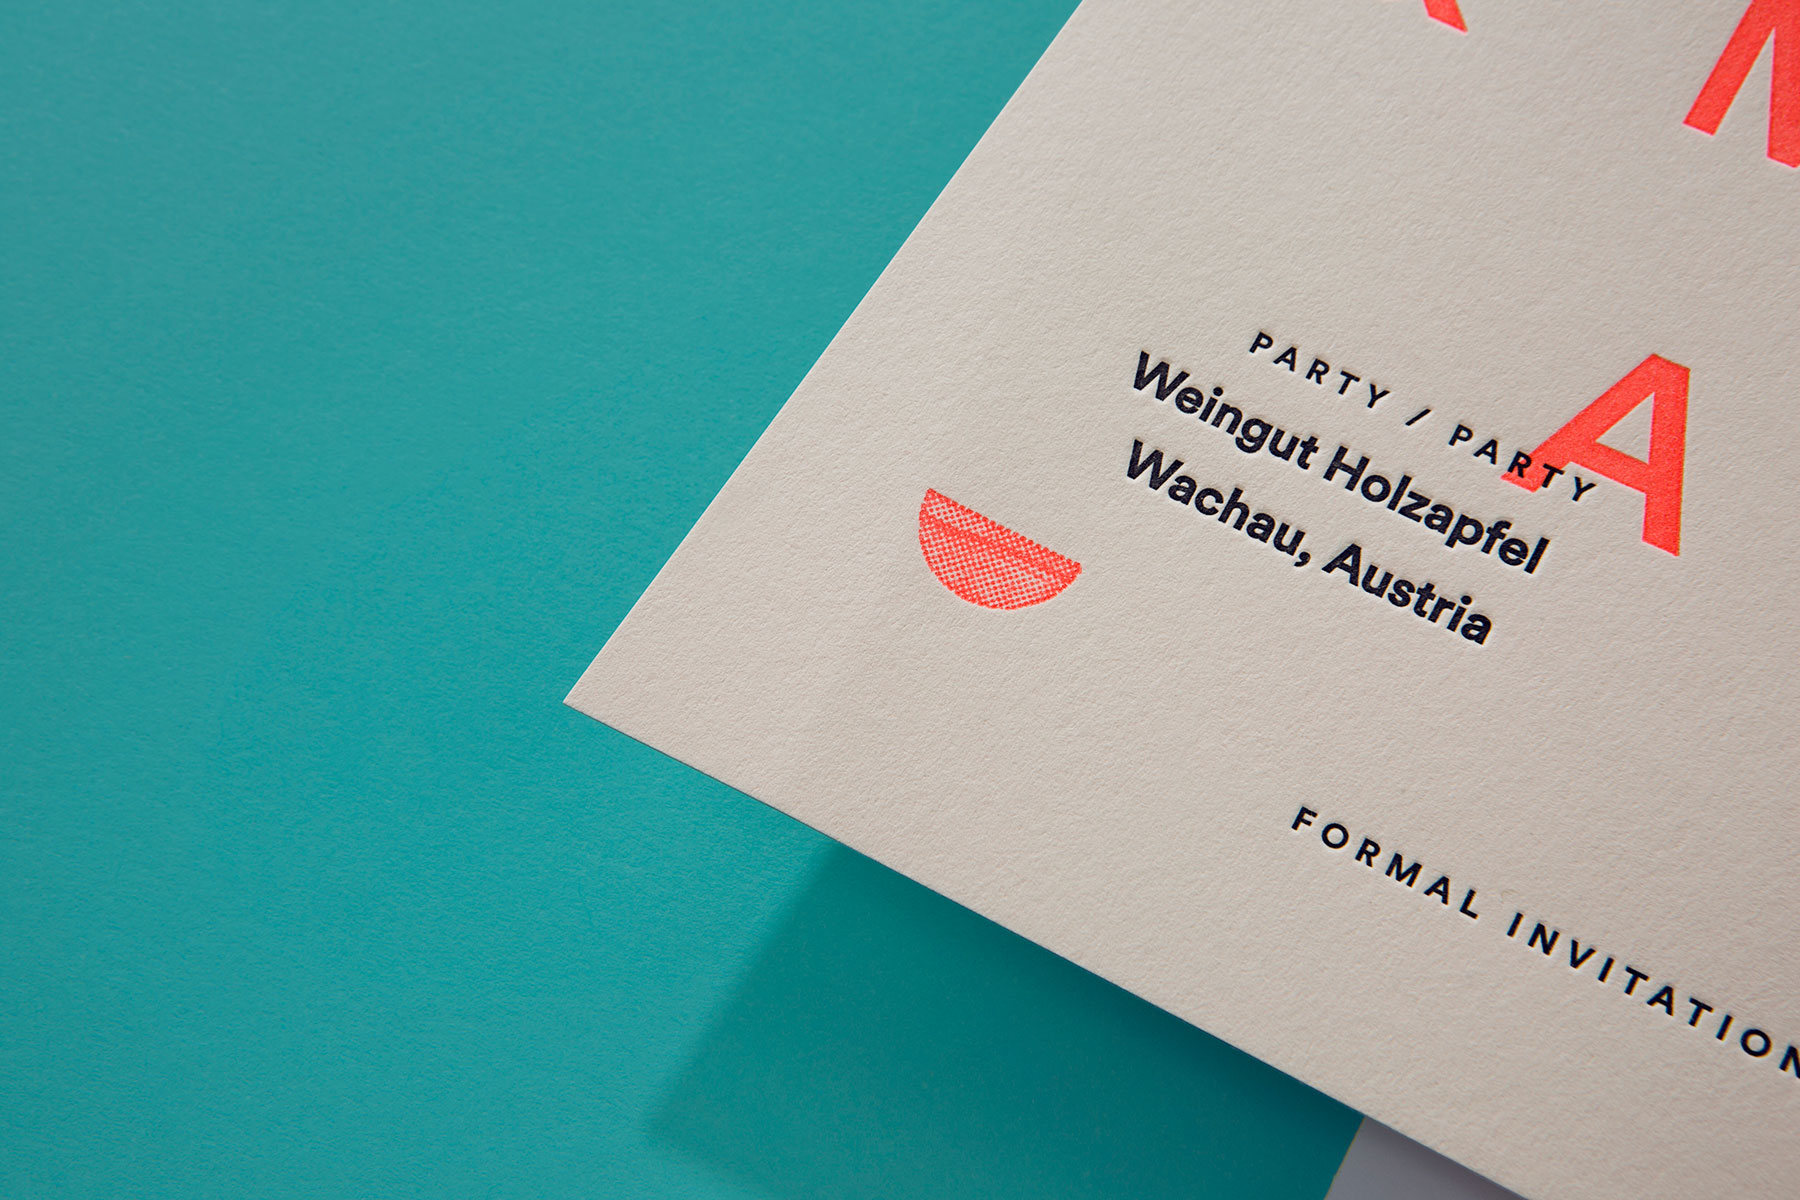 Modern minimalist letterpress wedding invitations for Julia and Mark on Colorplan